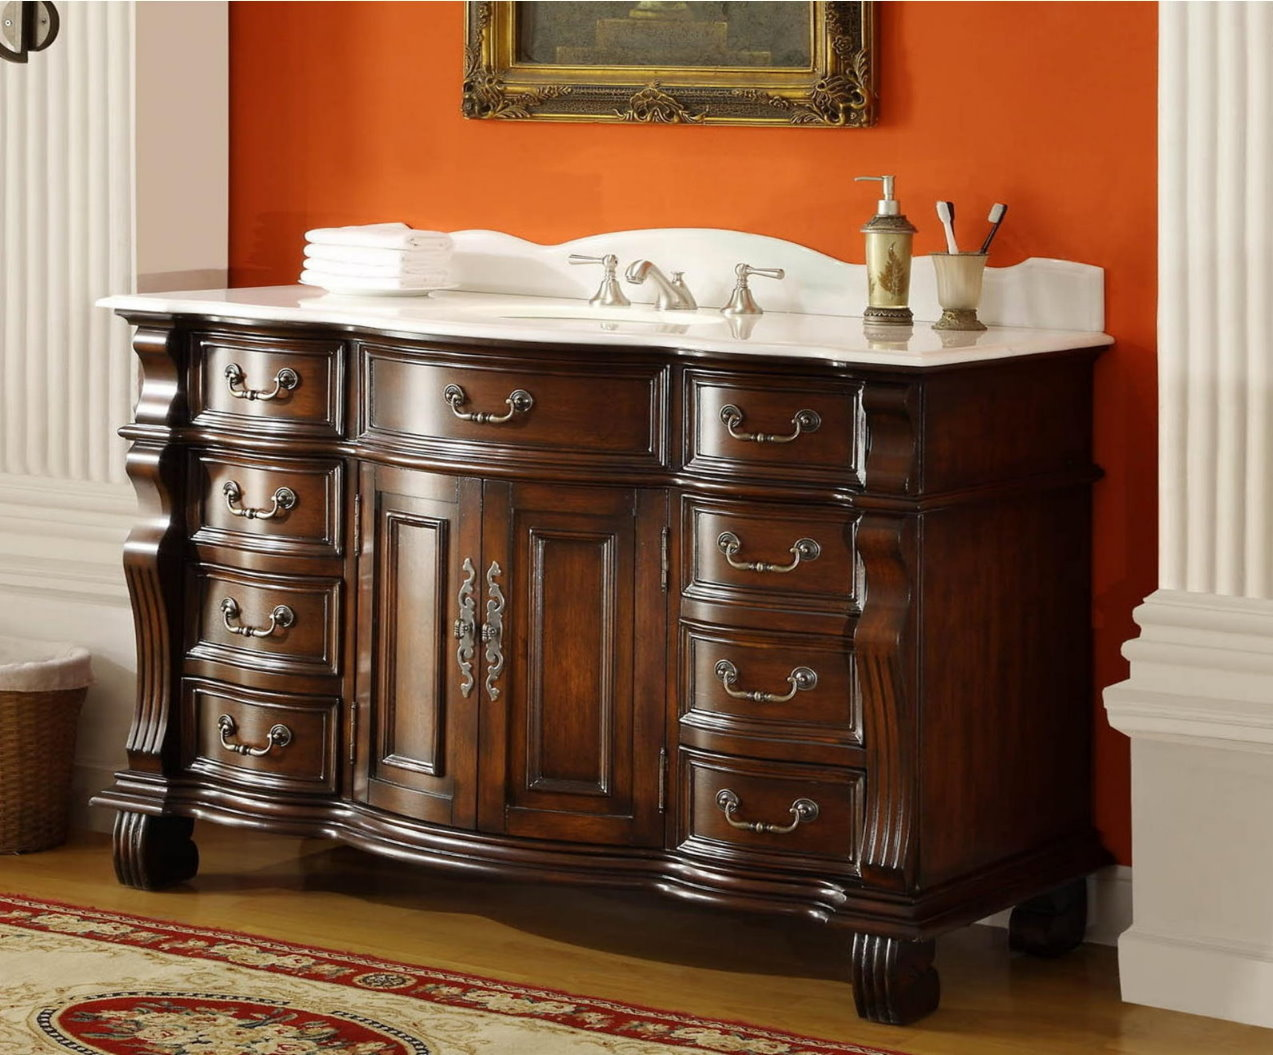 60 inch Single Sink Bathroom Vanity 8 Drawers Light Cherry